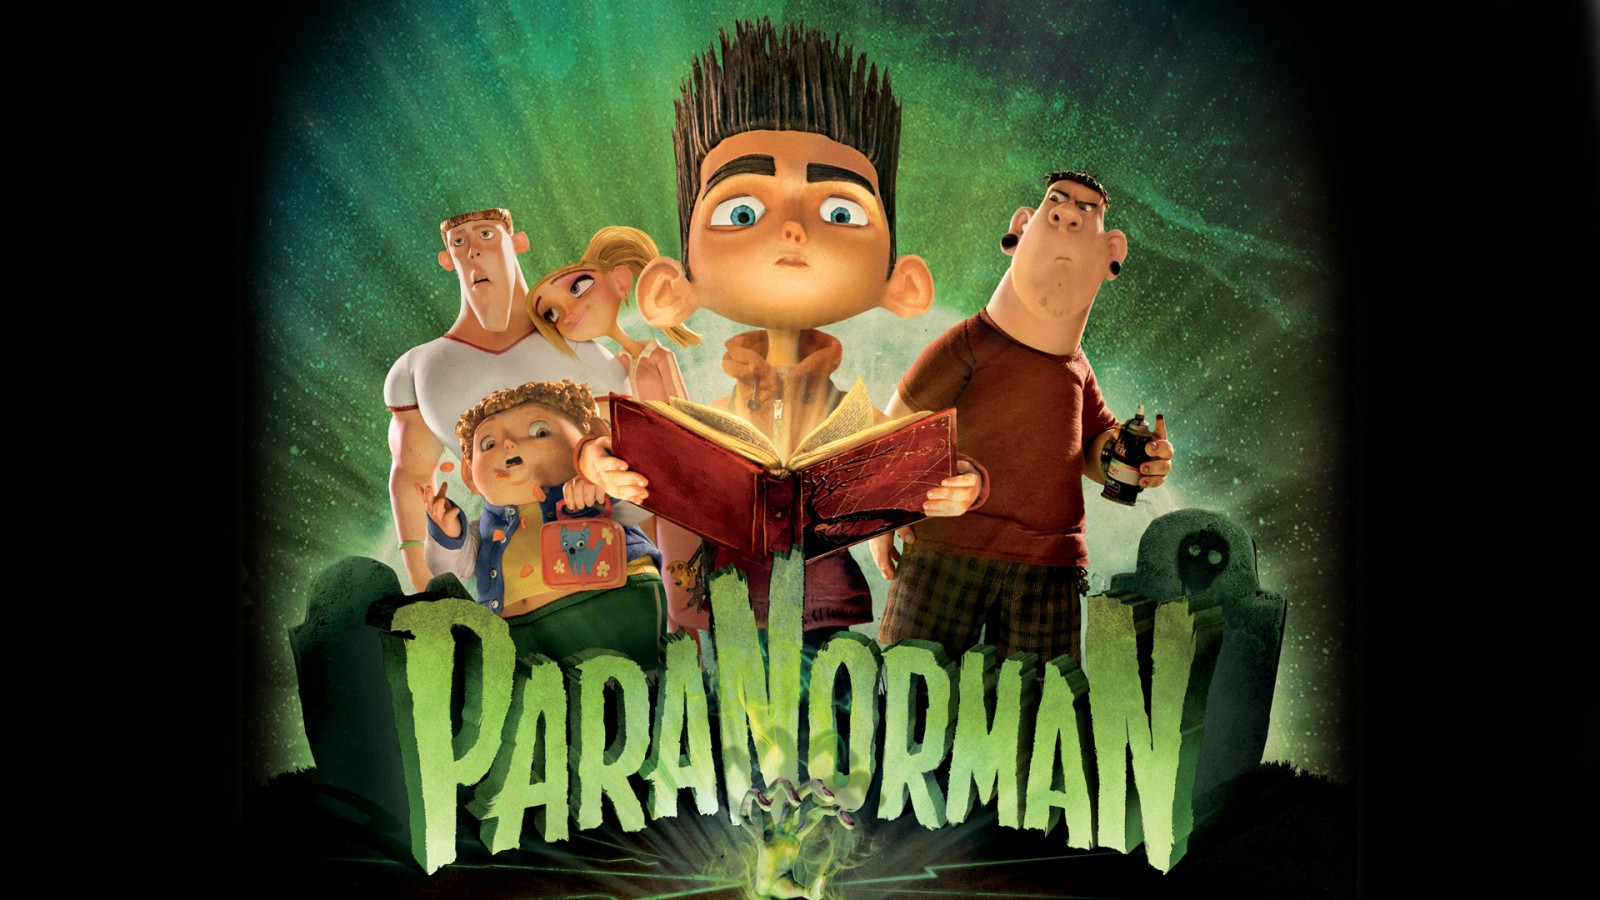 3d Hd Wallpapers 1280x1024 Paranorman Movie Wallpapers Hd Wallpapers Id 11740